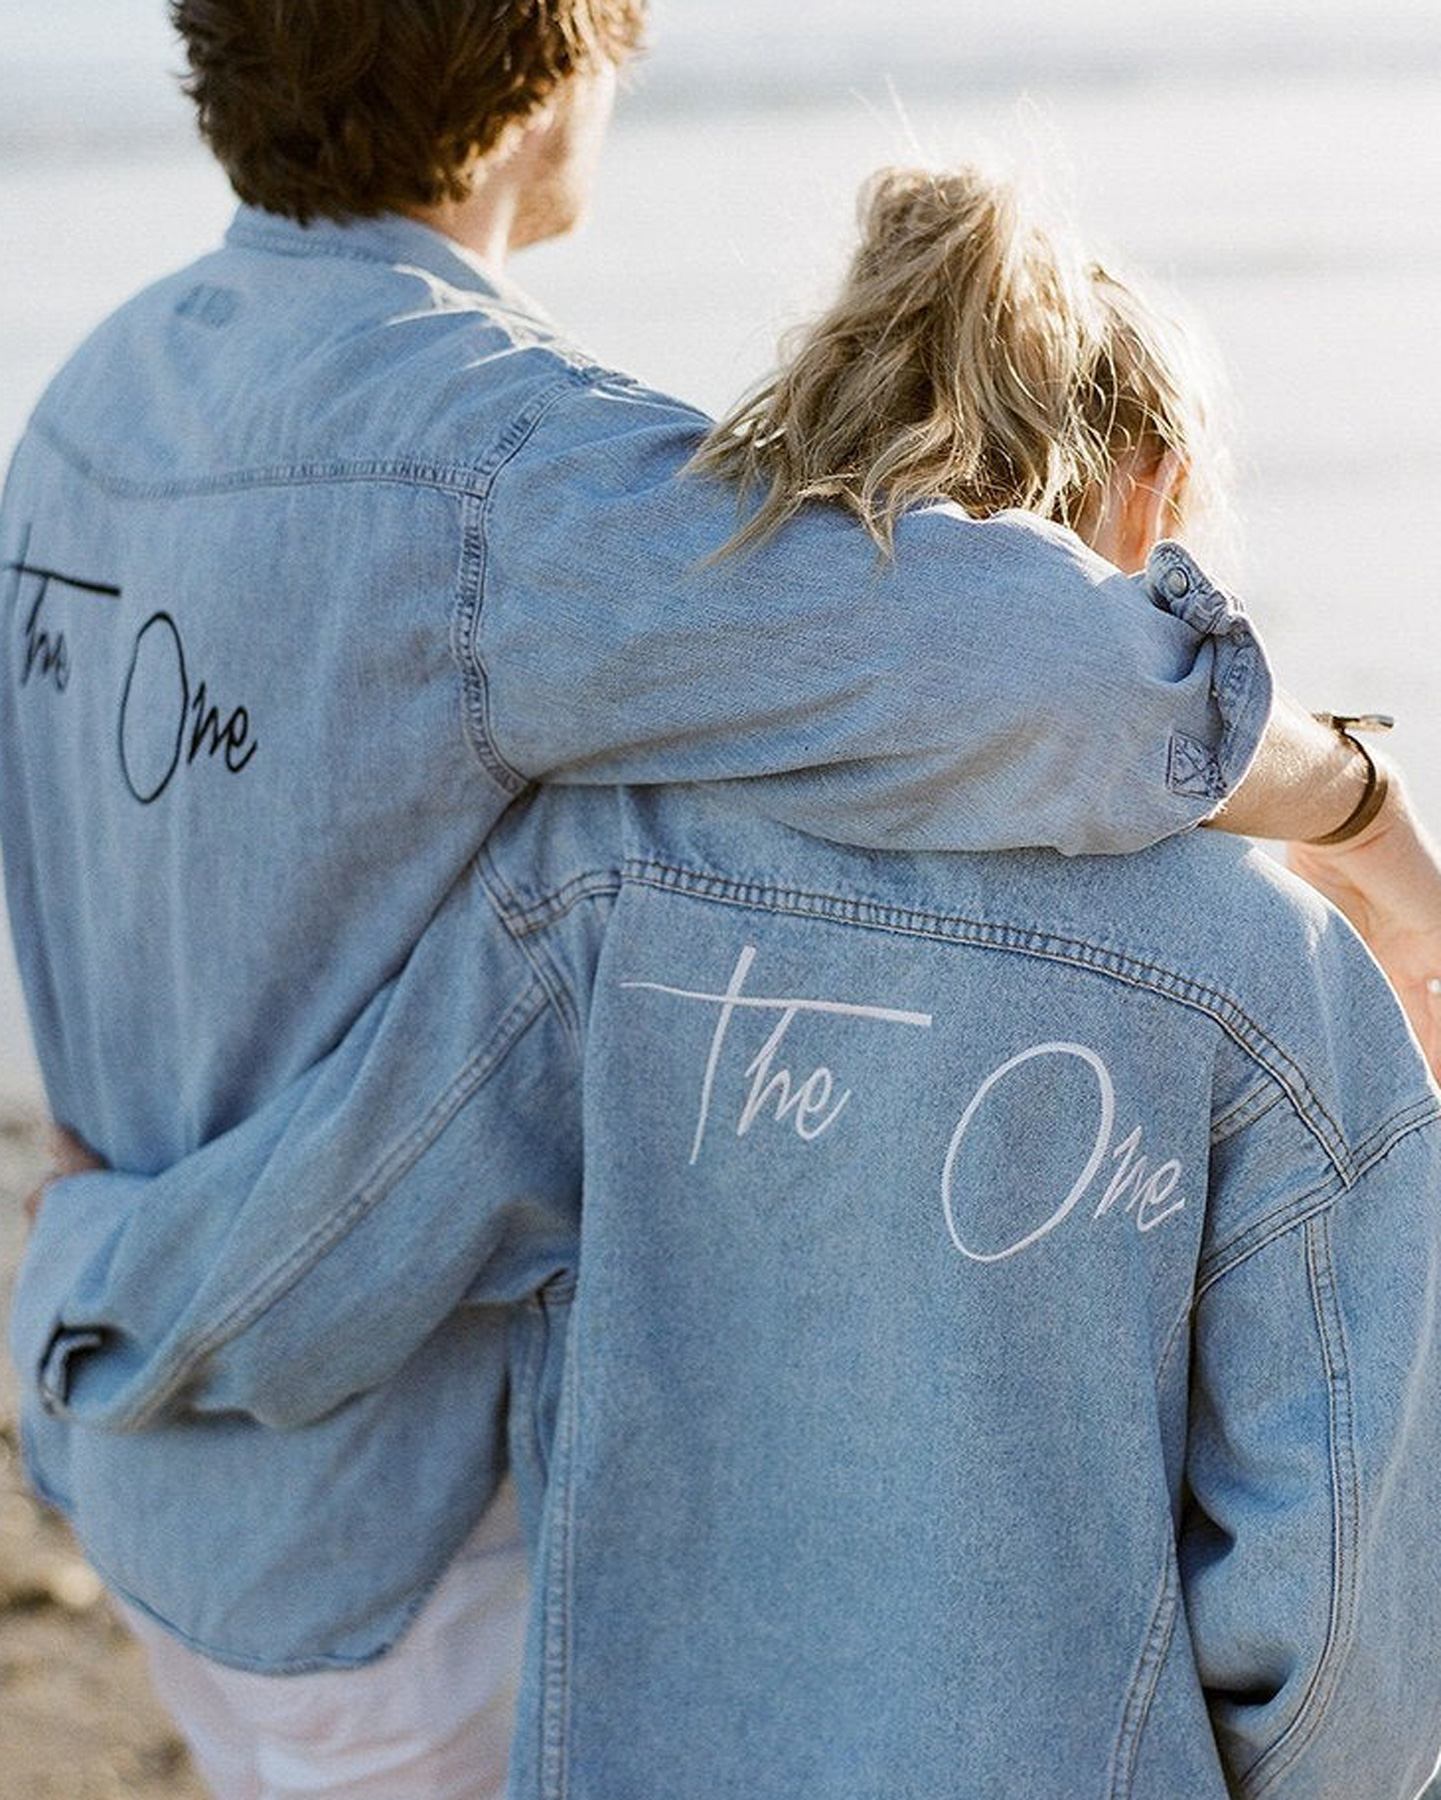 Etsy 2020 Wedding Trends: Customized Couples Jackets